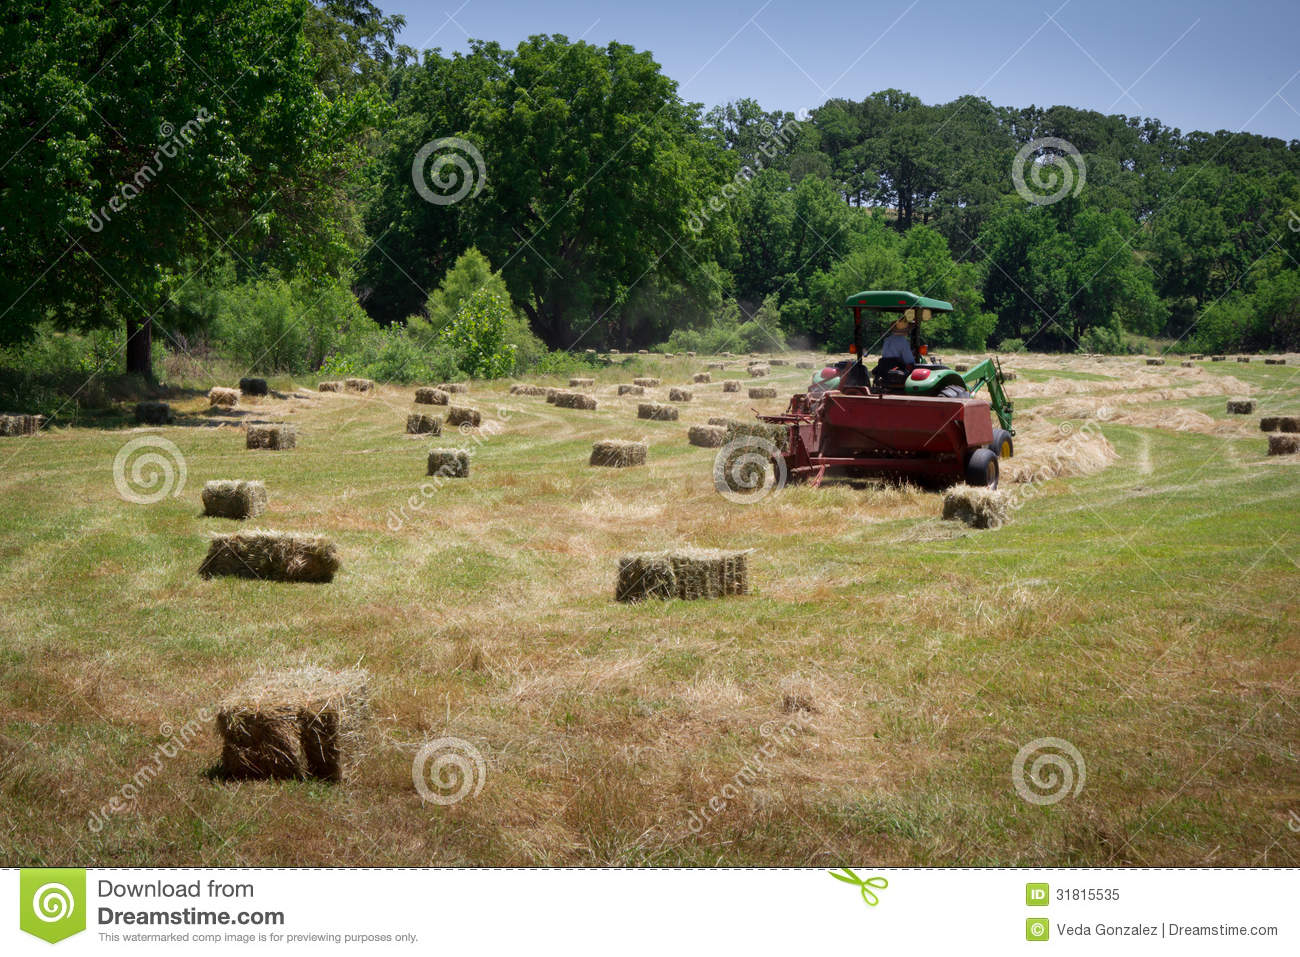 Hay Farmer Tractor Cartoon : Farmer haying field royalty free stock image